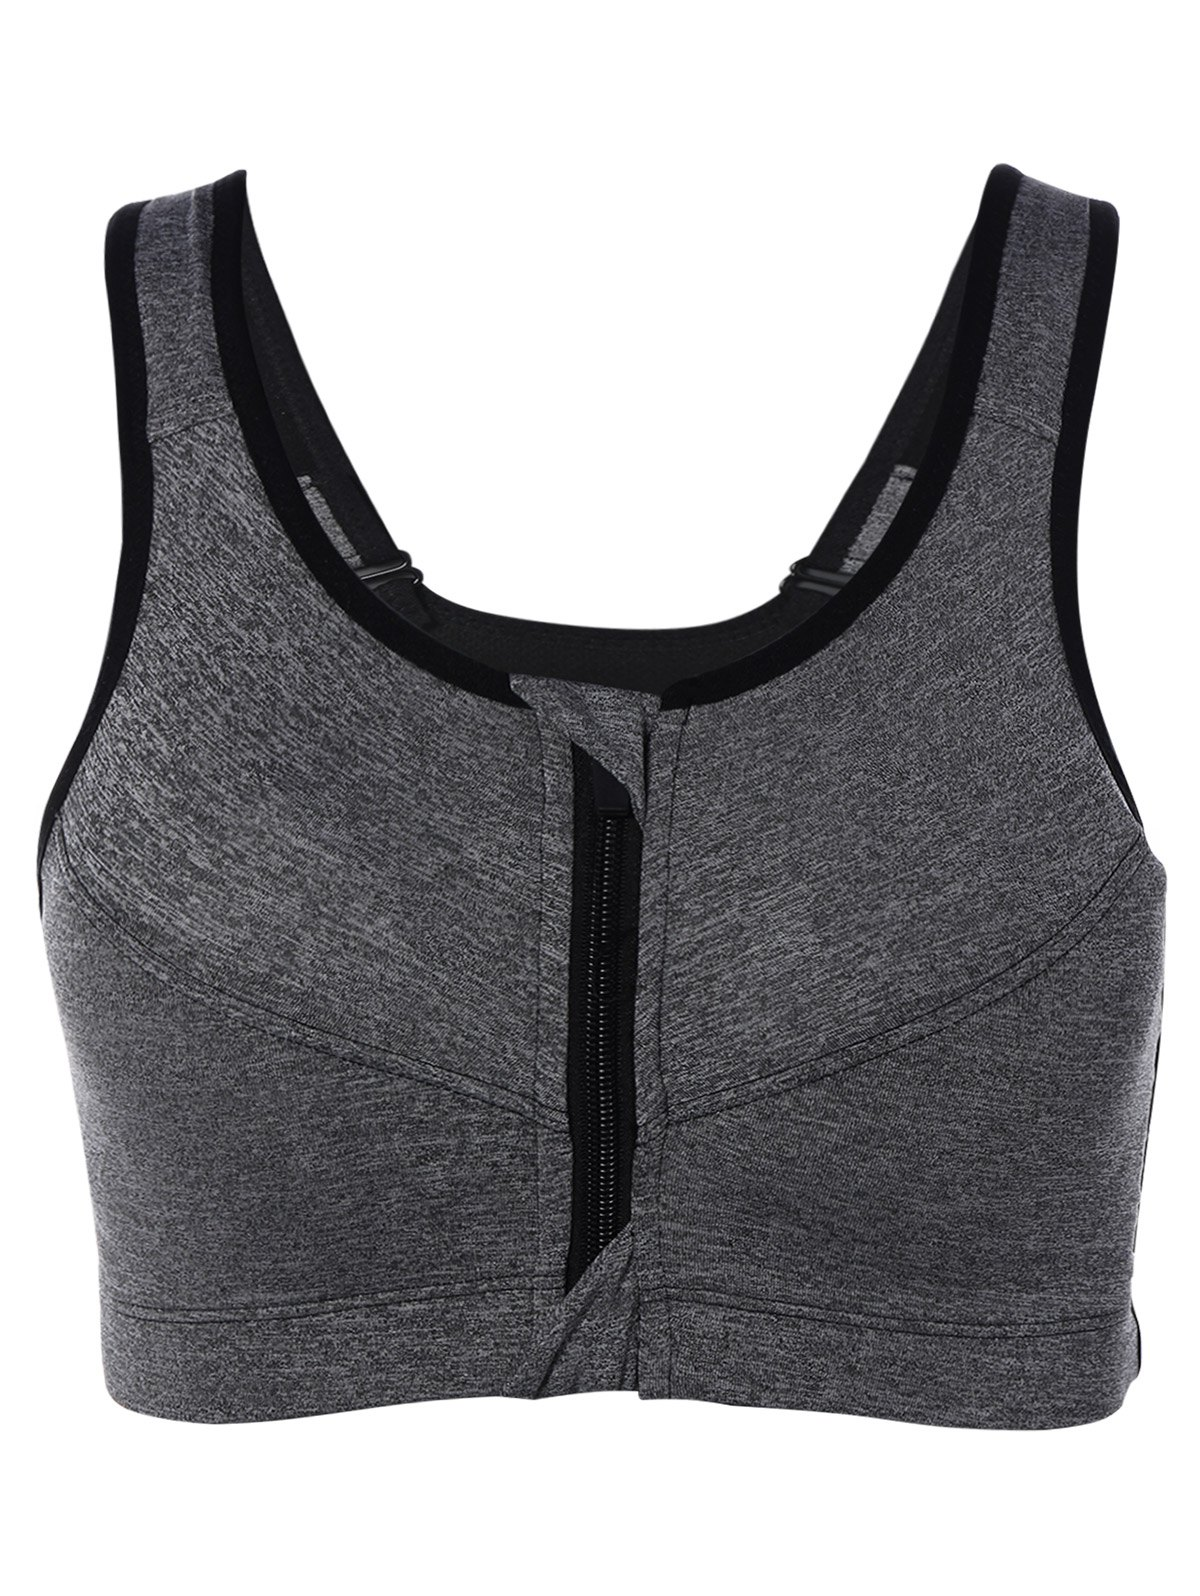 Cut Out Back Zipper Sports Bra